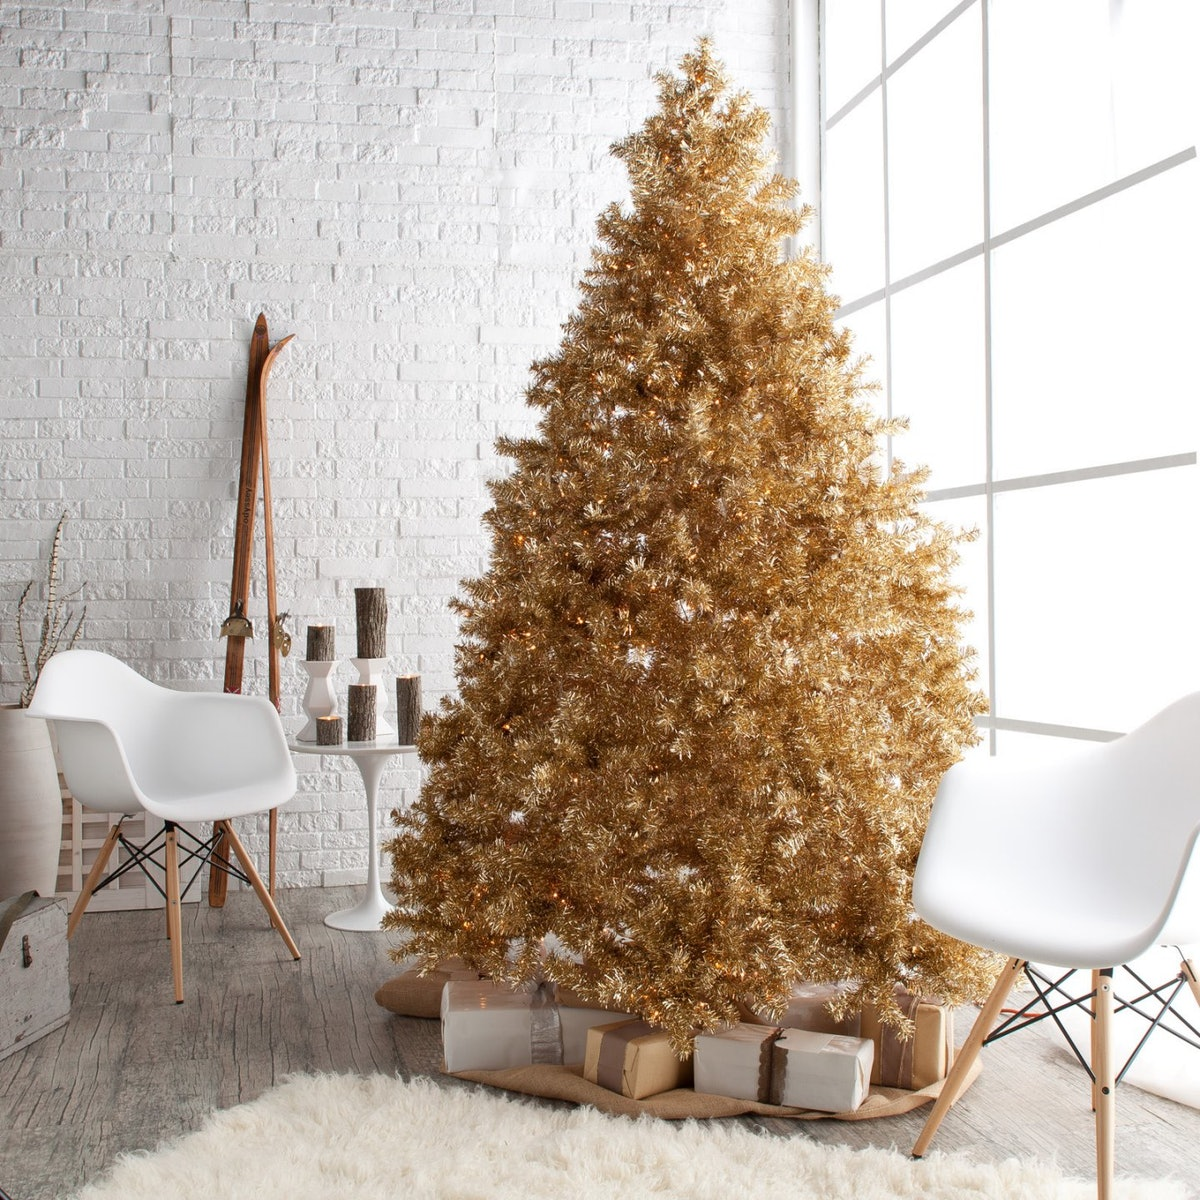 Classic Champagne Gold Full Pre-lit Christmas Tree